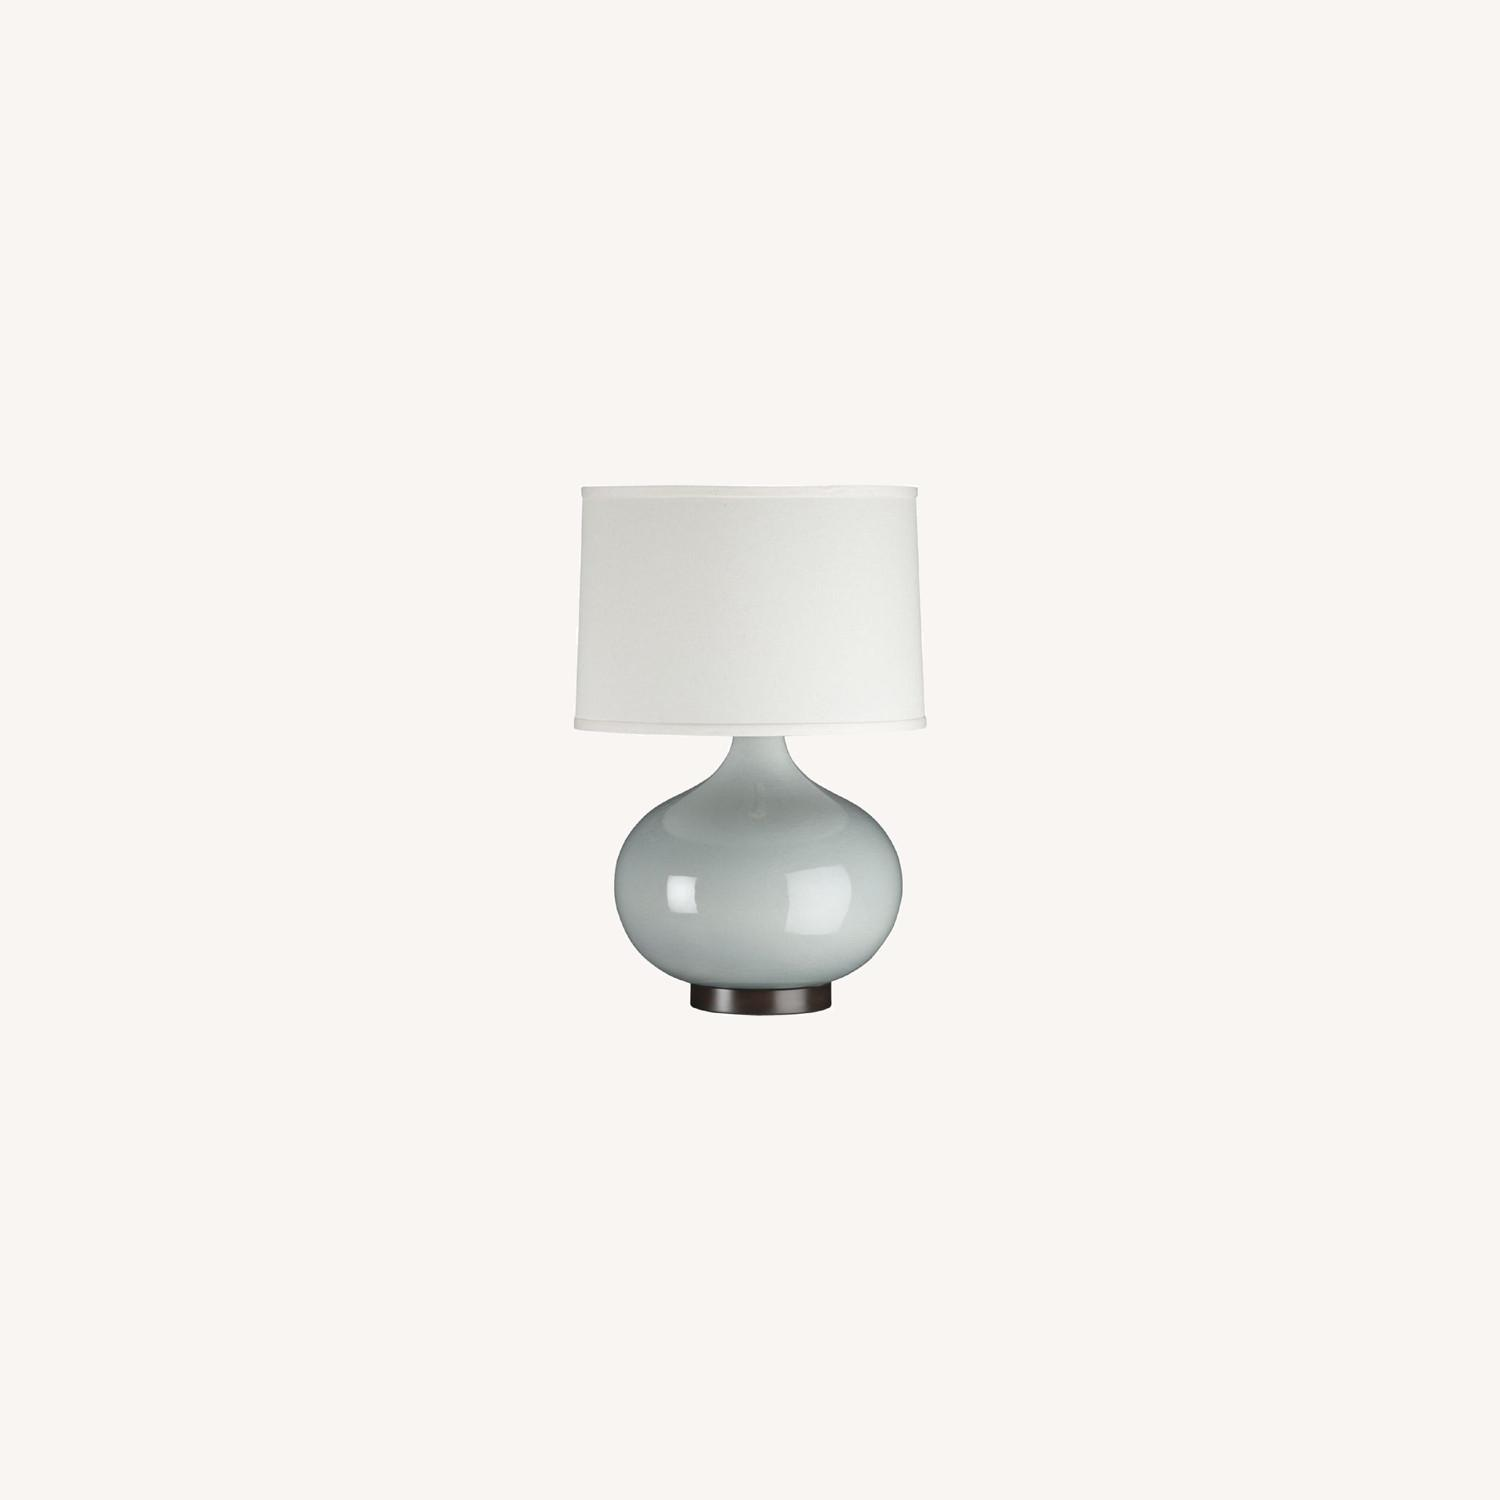 Crate & Barrel Merie Table Lamps (set of 2) - image-0